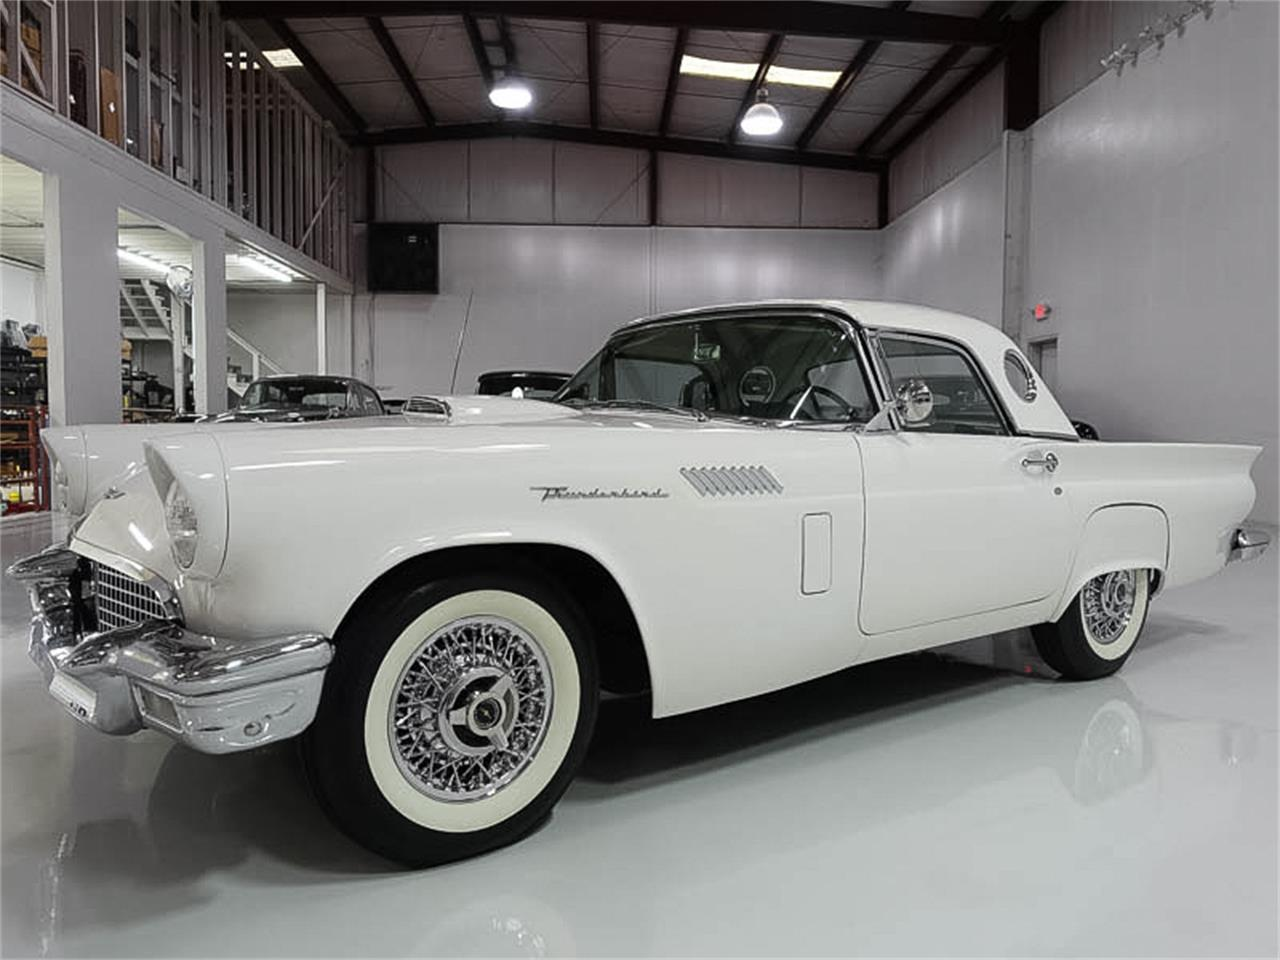 Large Picture of Classic 1957 Ford Thunderbird located in Missouri Offered by Daniel Schmitt & Co. - EX4H